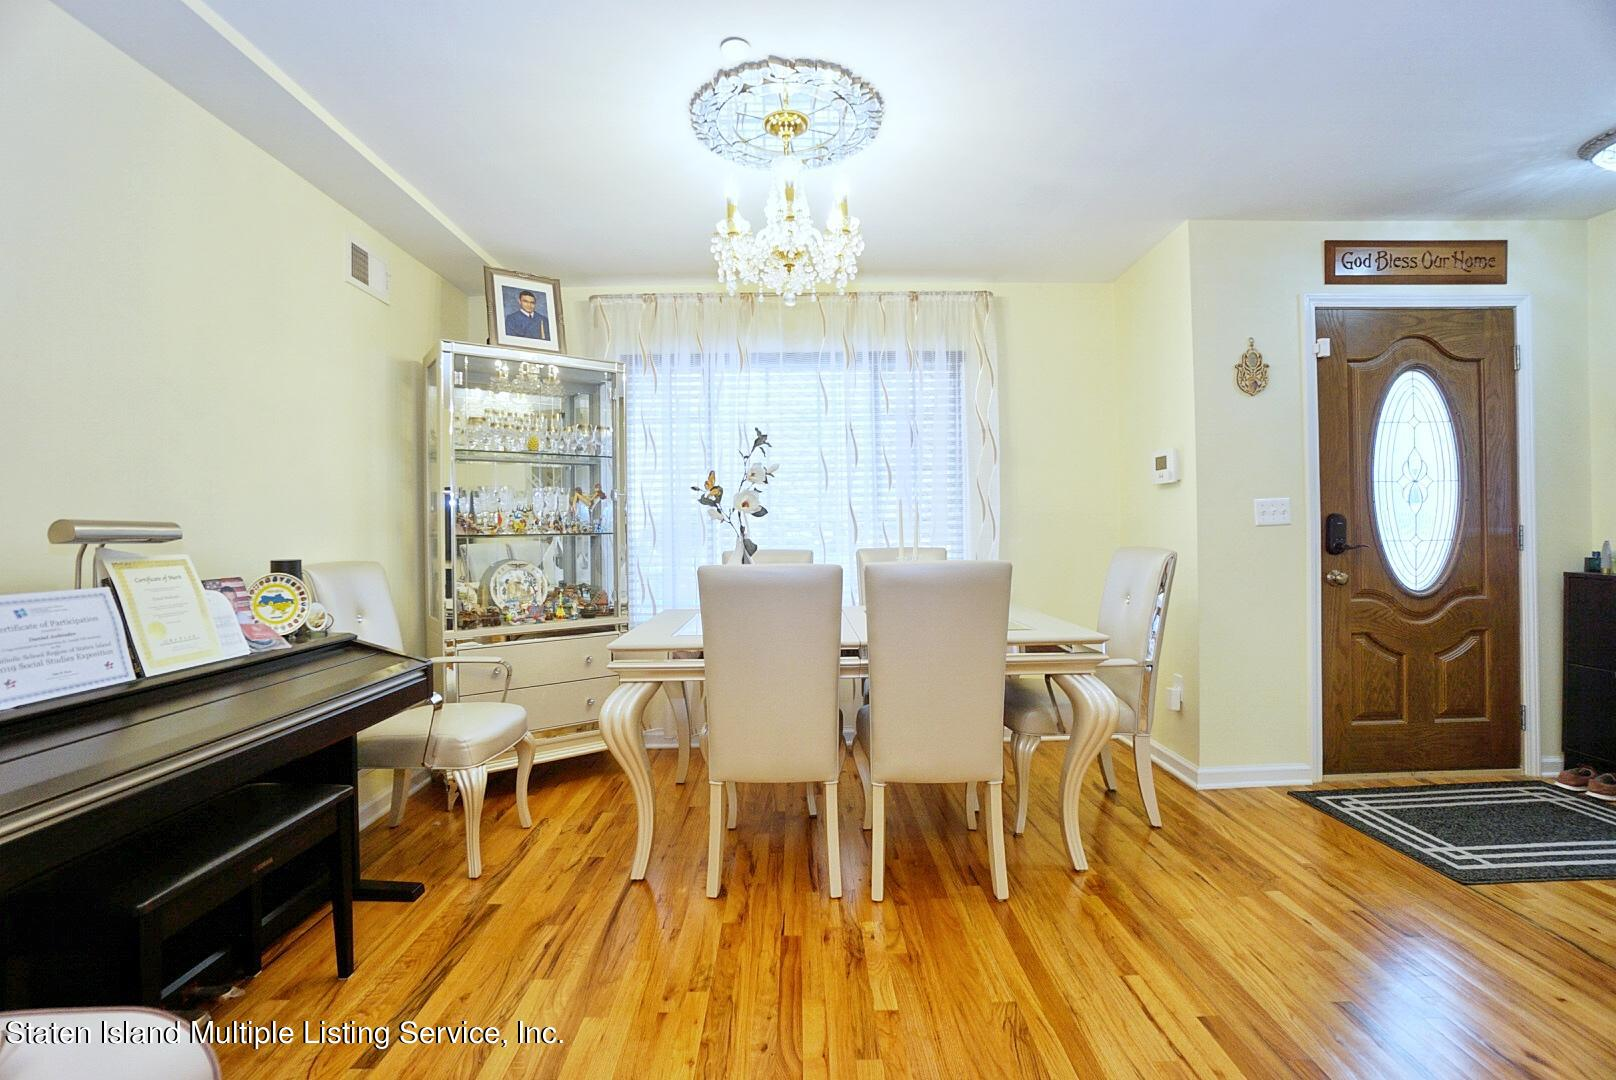 Single Family - Detached 171 Benziger Avenue  Staten Island, NY 10301, MLS-1145235-7